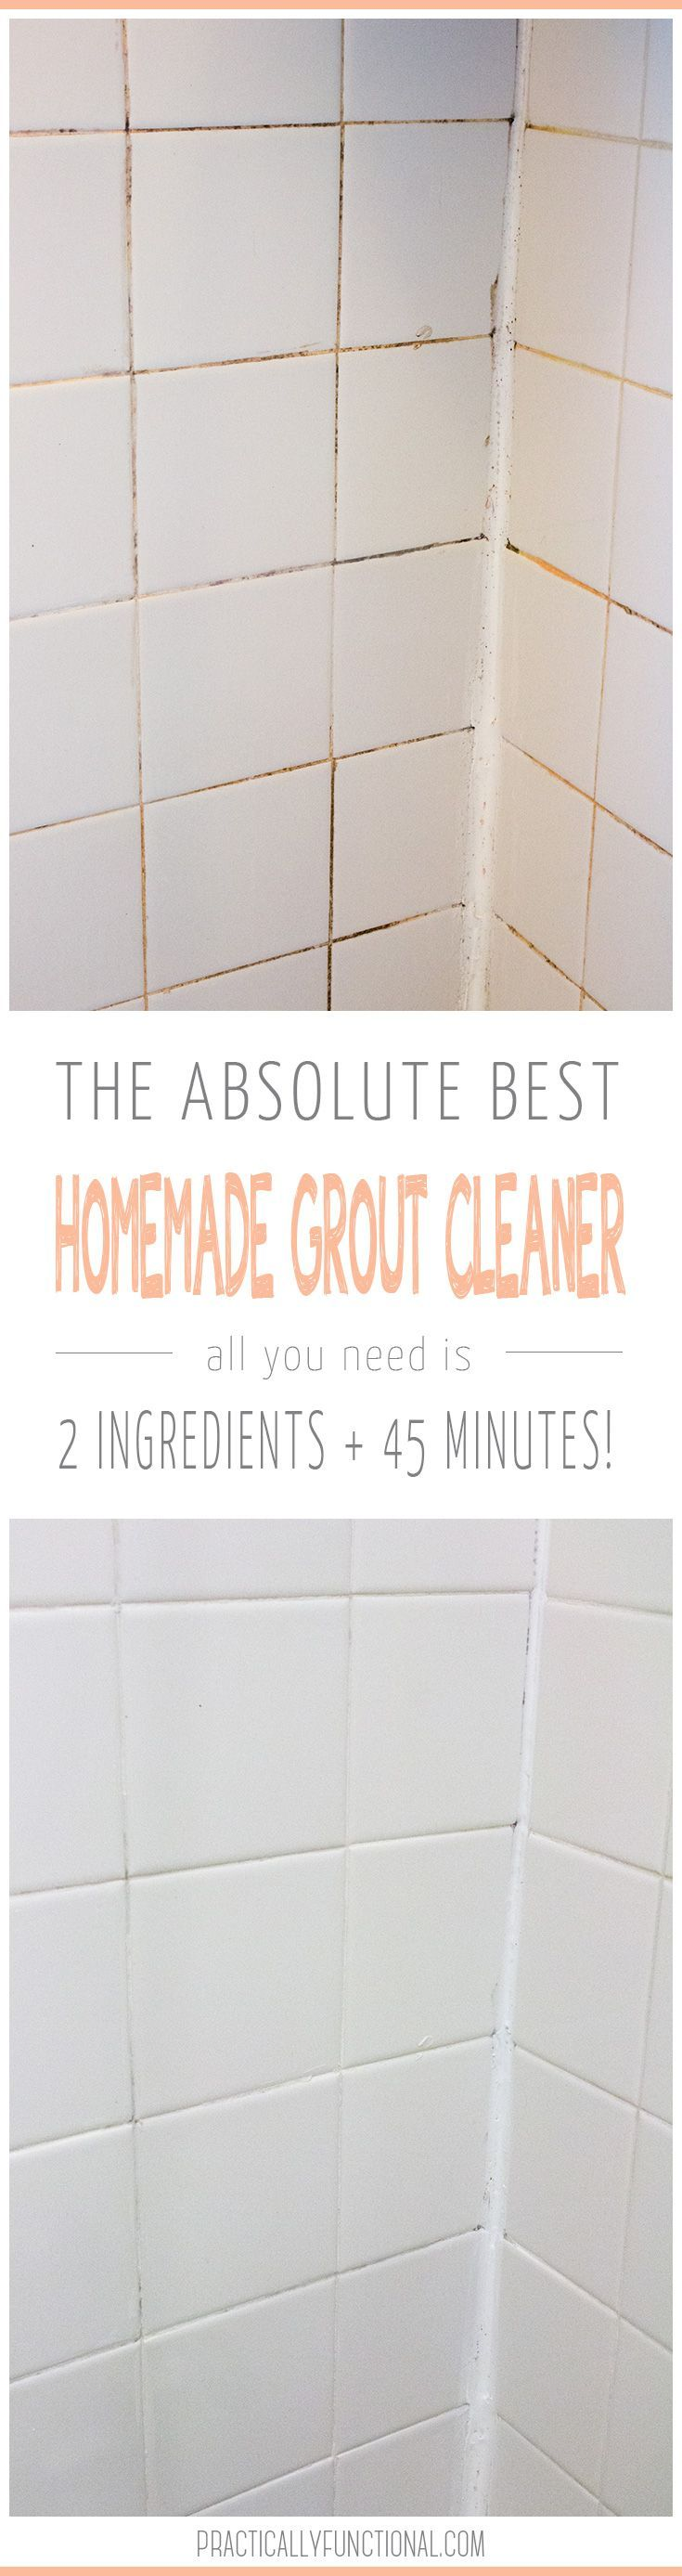 Best Grout Cleaner For Kitchen Floors 17 Best Ideas About Clean Grout On Pinterest Grout Cleaner